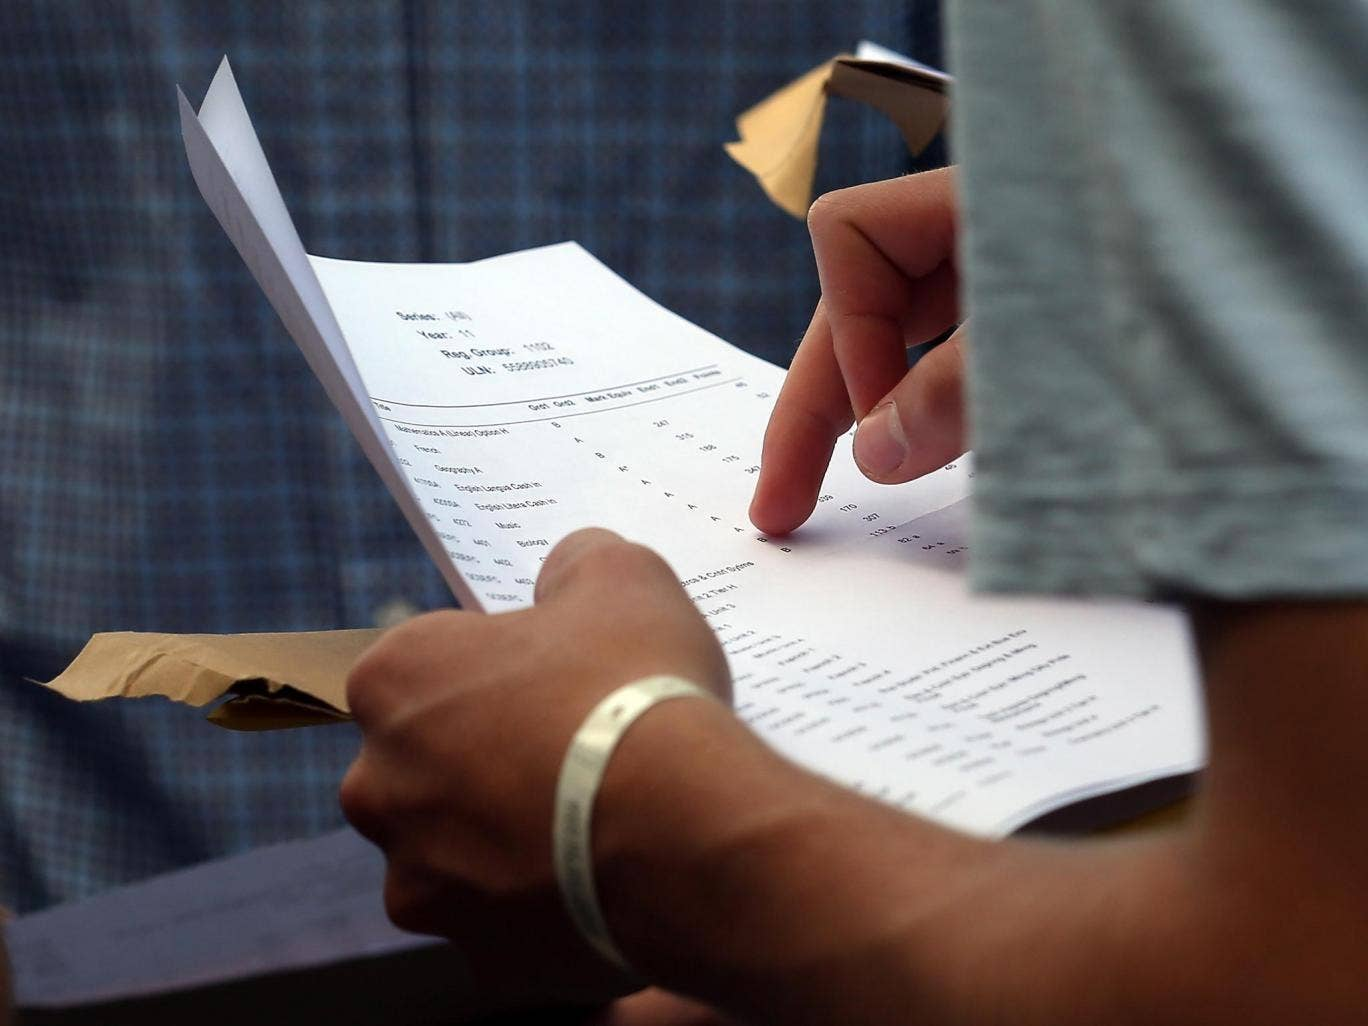 Most students around the country are in the midst of their exams, but it seems to be the universities who need to be sure to check their work